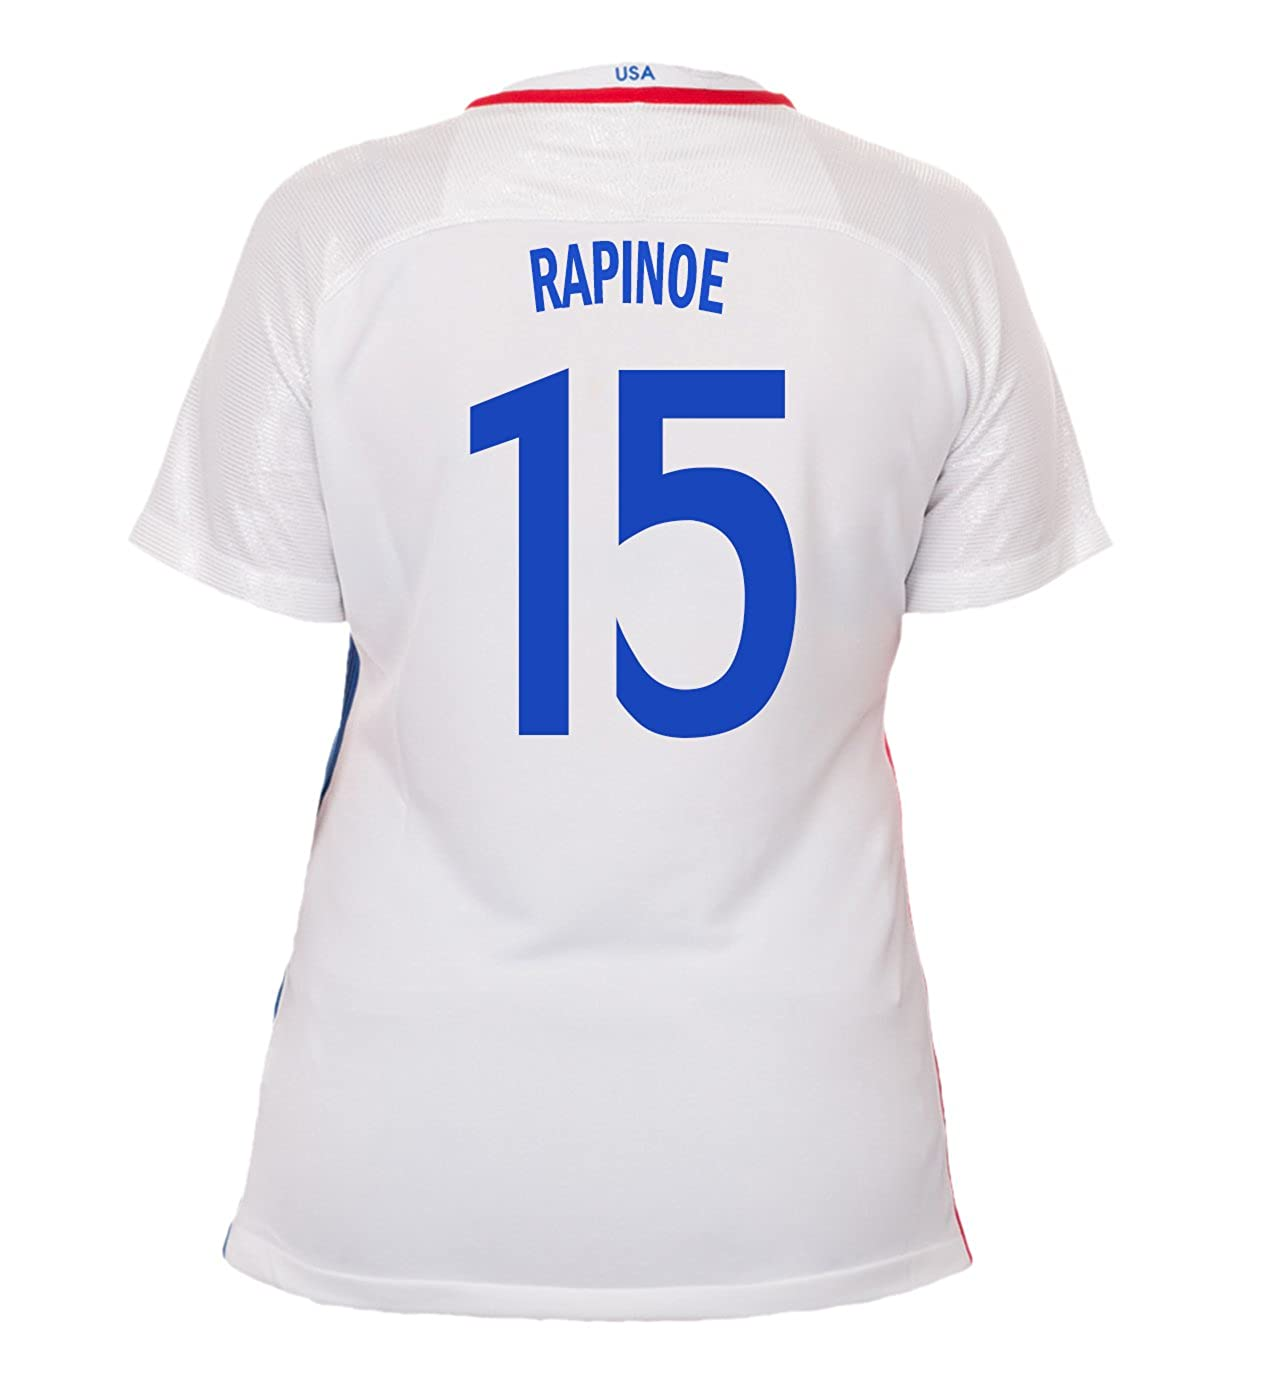 7e34589caba Amazon.com  Nike Rapinoe  15 USA Home Soccer Jersey Rio 2016 Olympics  Women s (XL)  Clothing